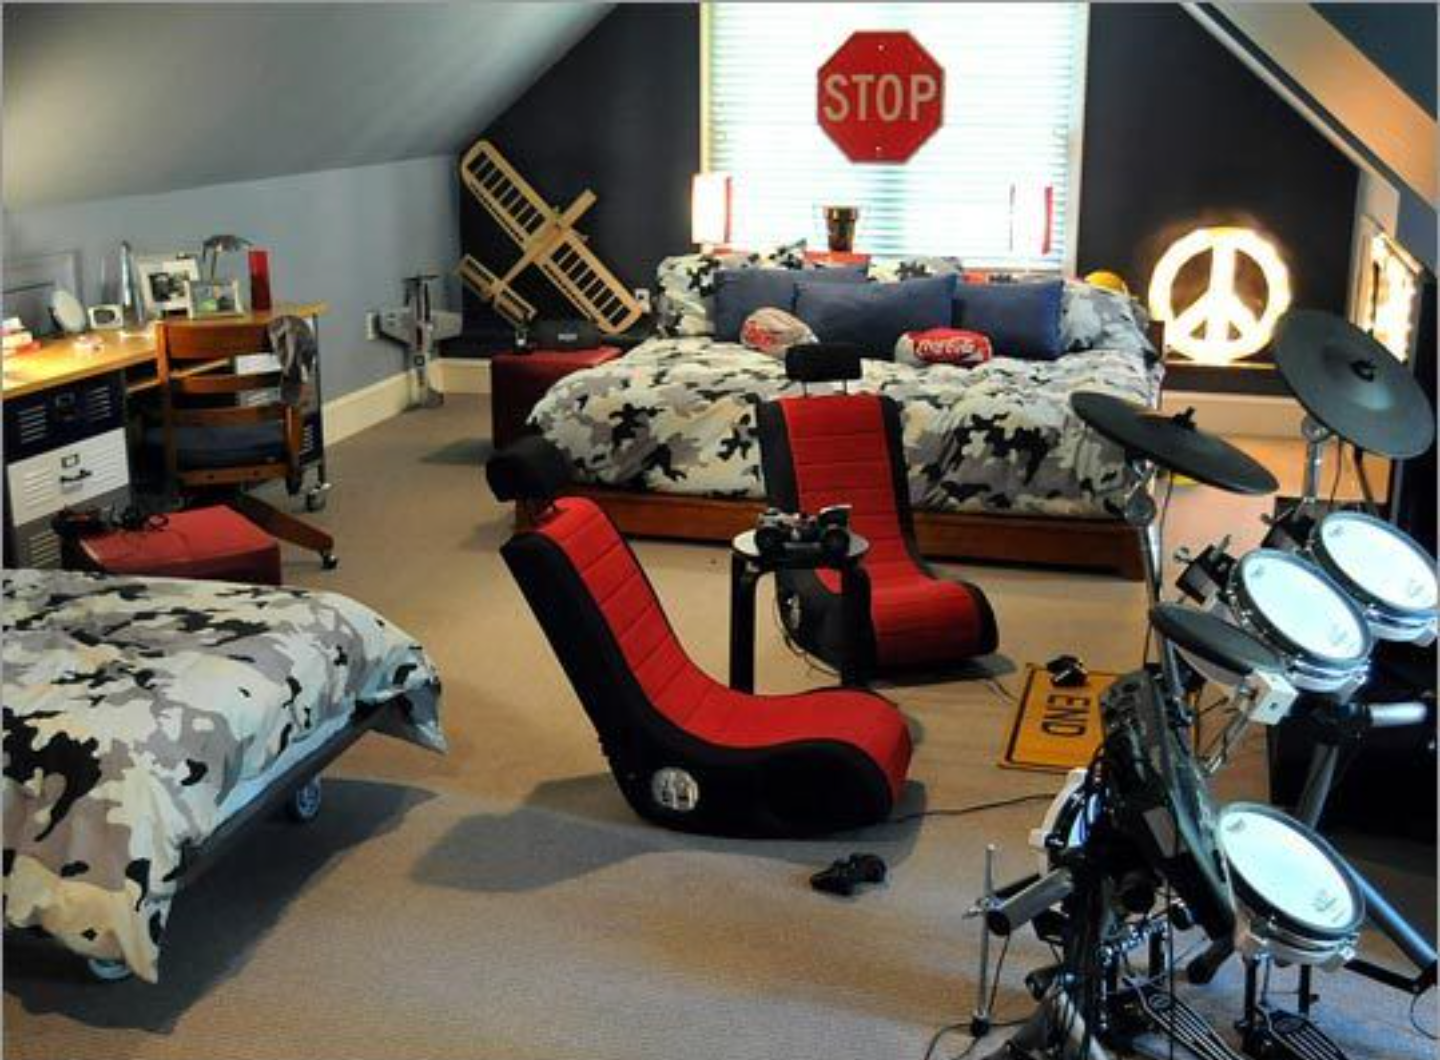 Boys sharing bedroom ideas - This Is The Perfect Shared Bedroom For Preteen Brothers Teens Judging By The Larger